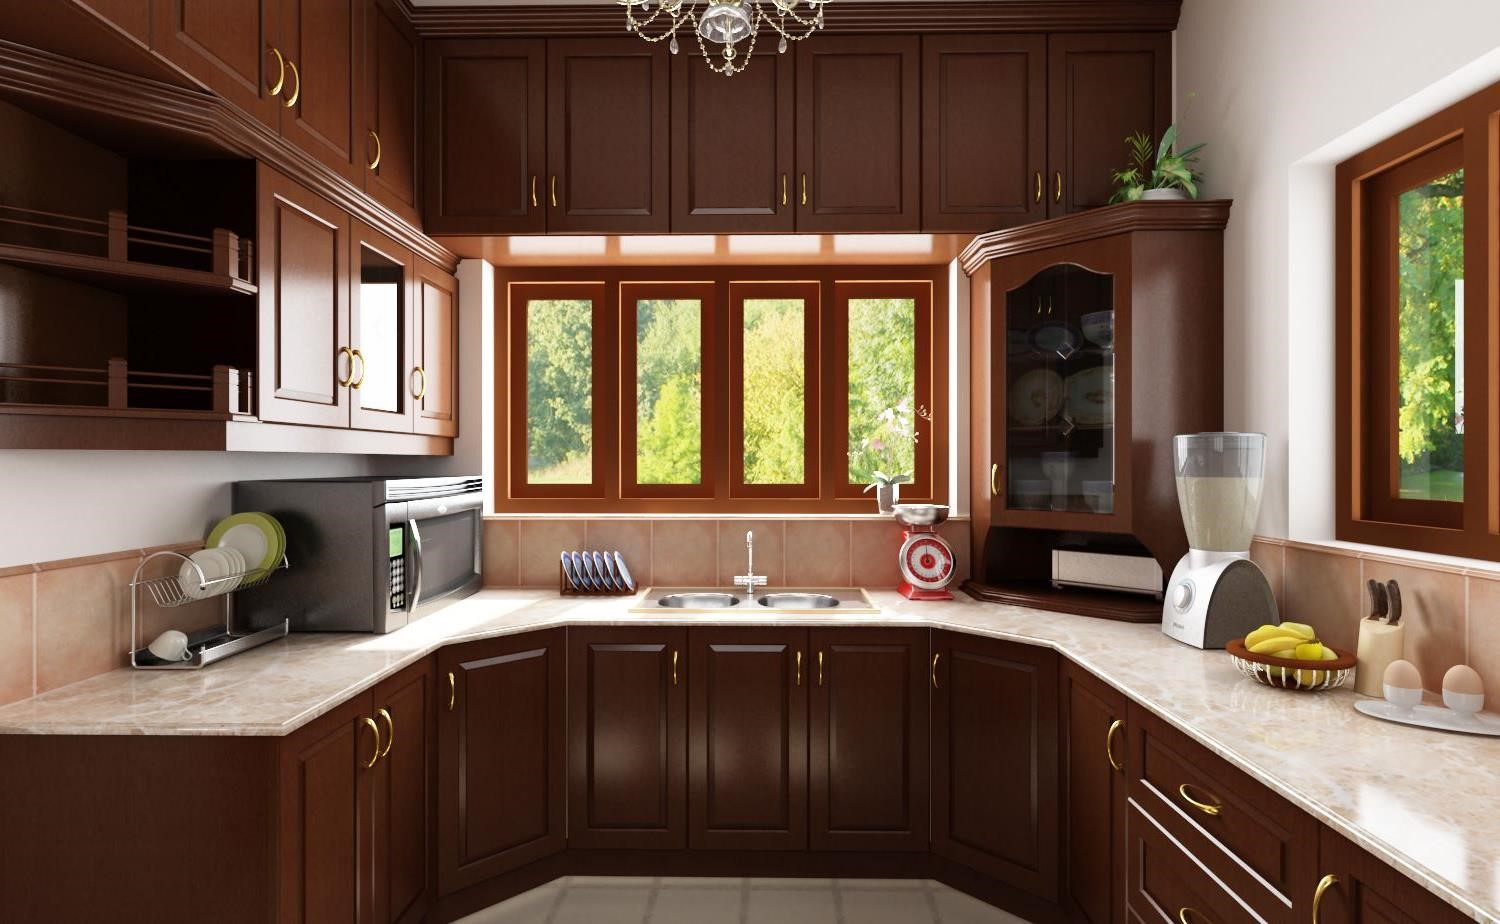 Traditional Indian Kitchen Designs Traditional Kitchen Design On Formality And Functionality